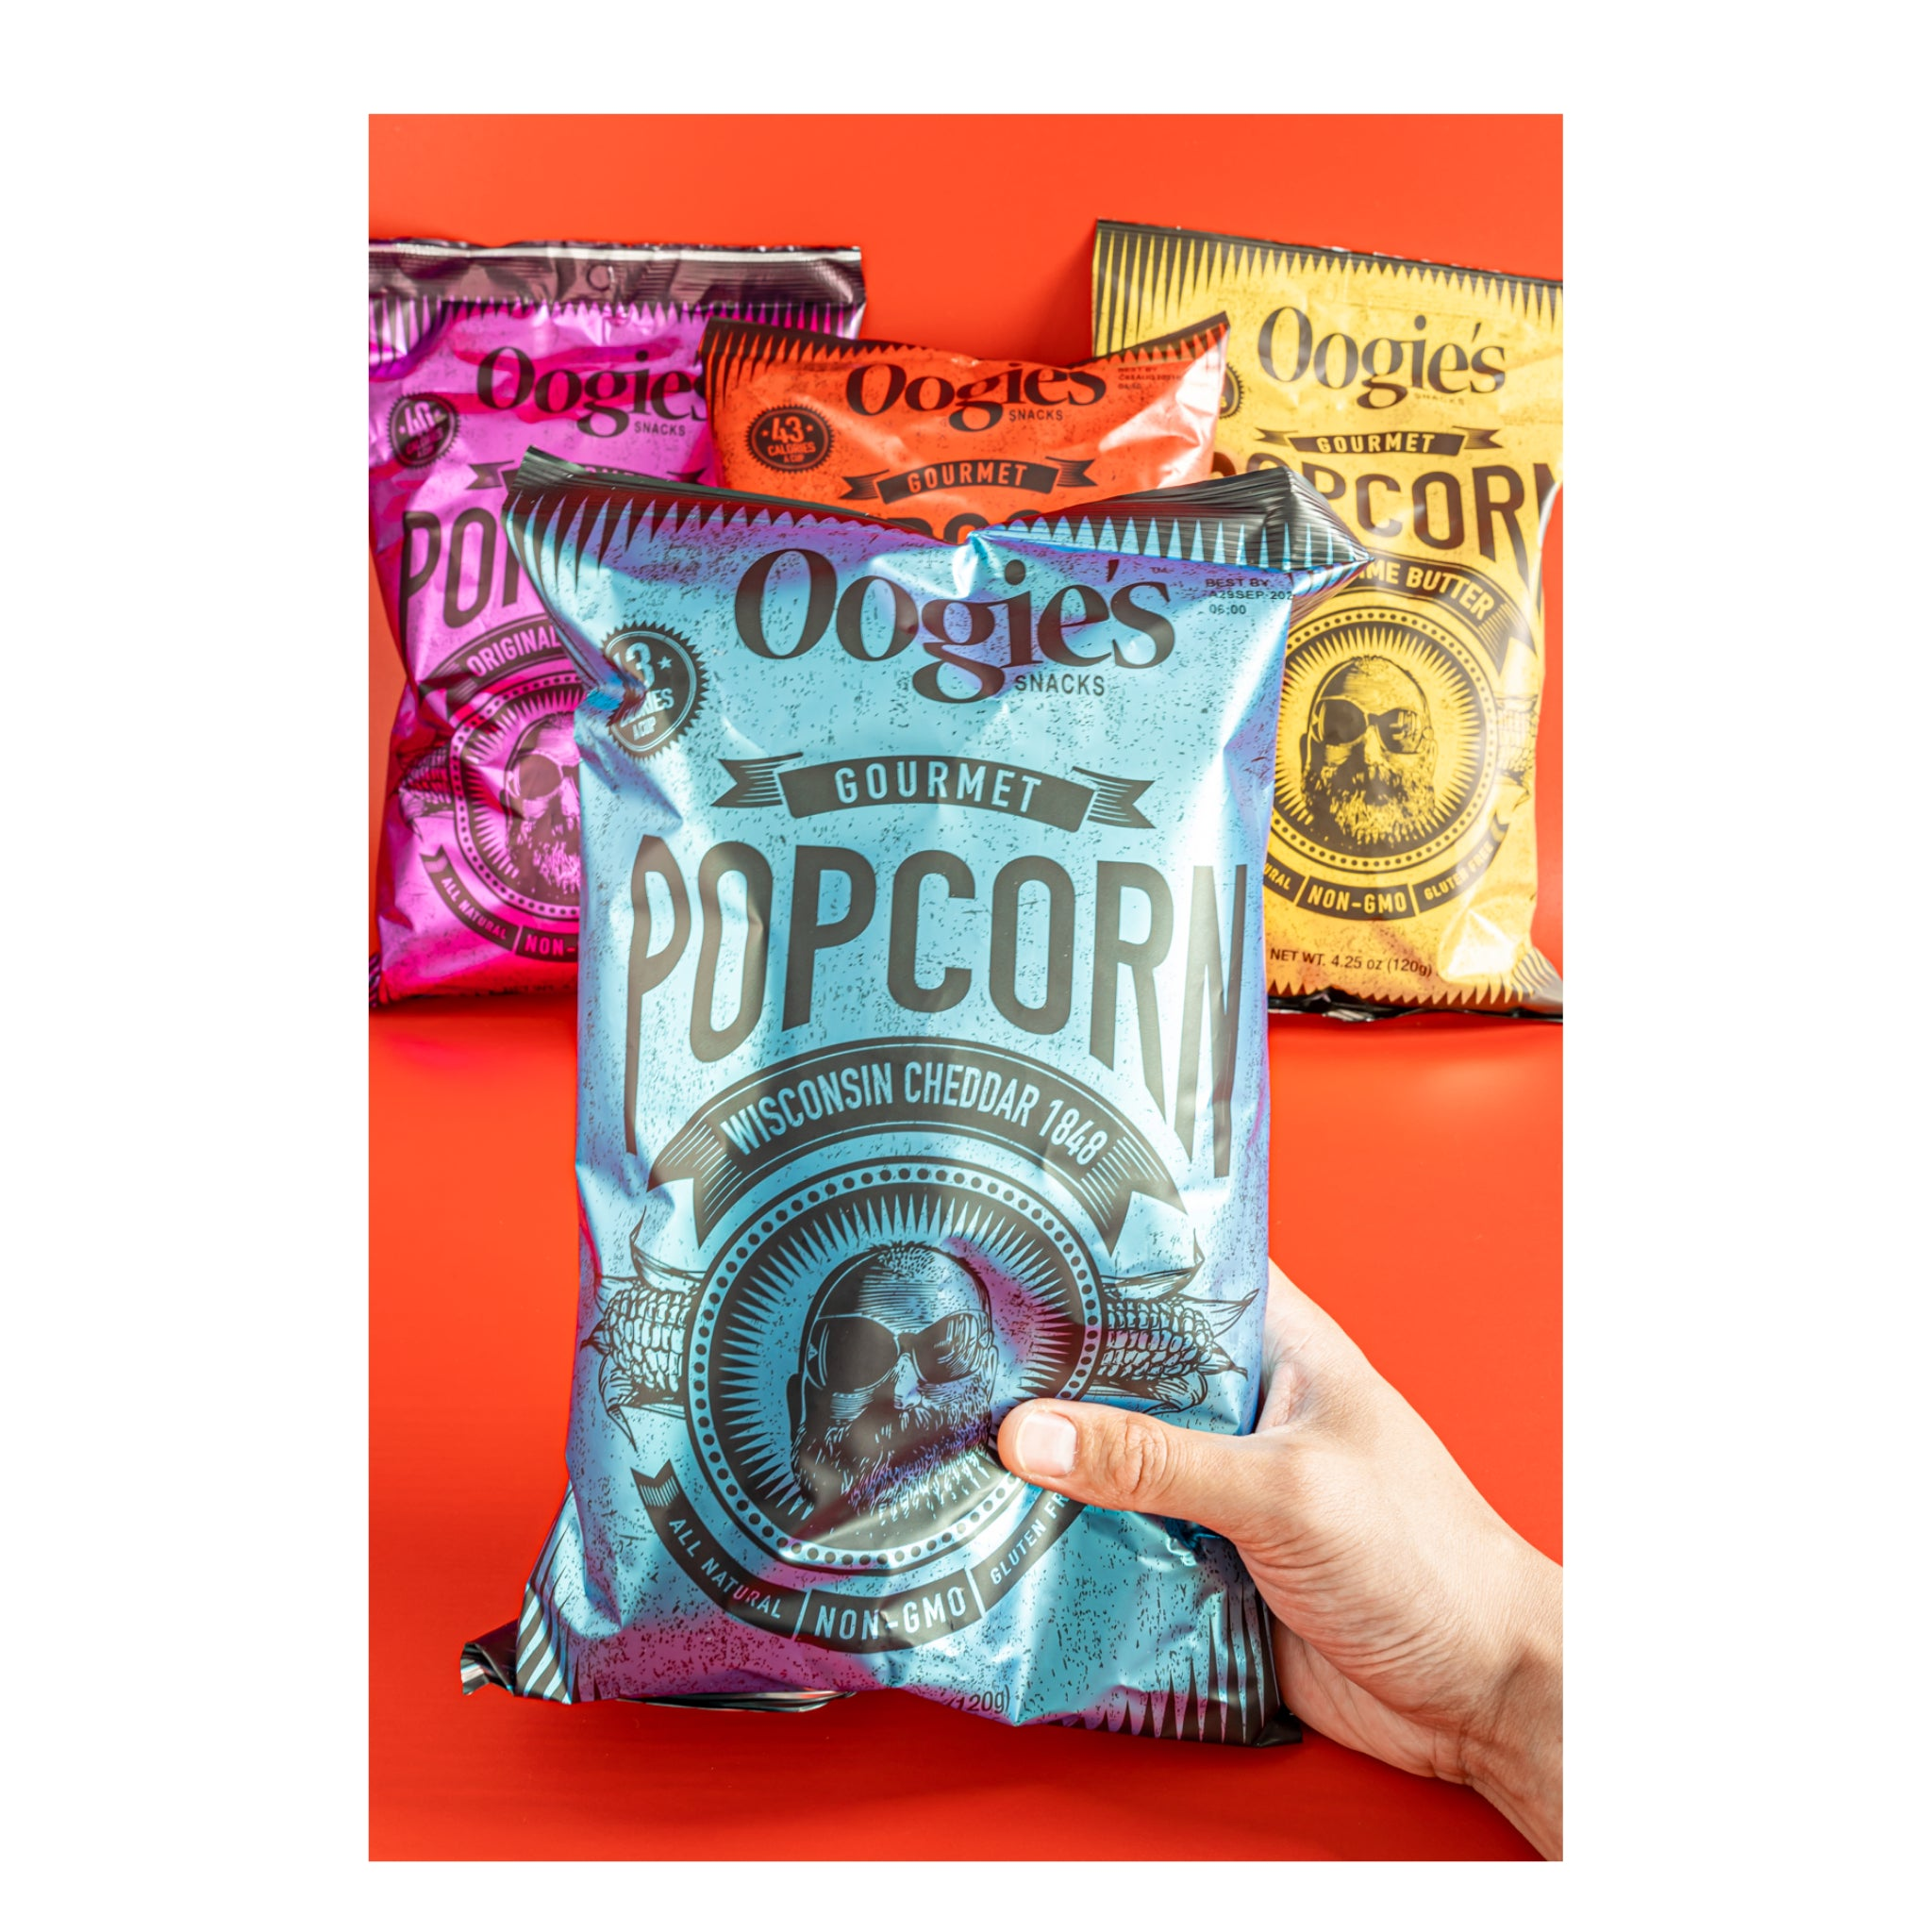 Four fan favorite Oogie's popcorn flavors